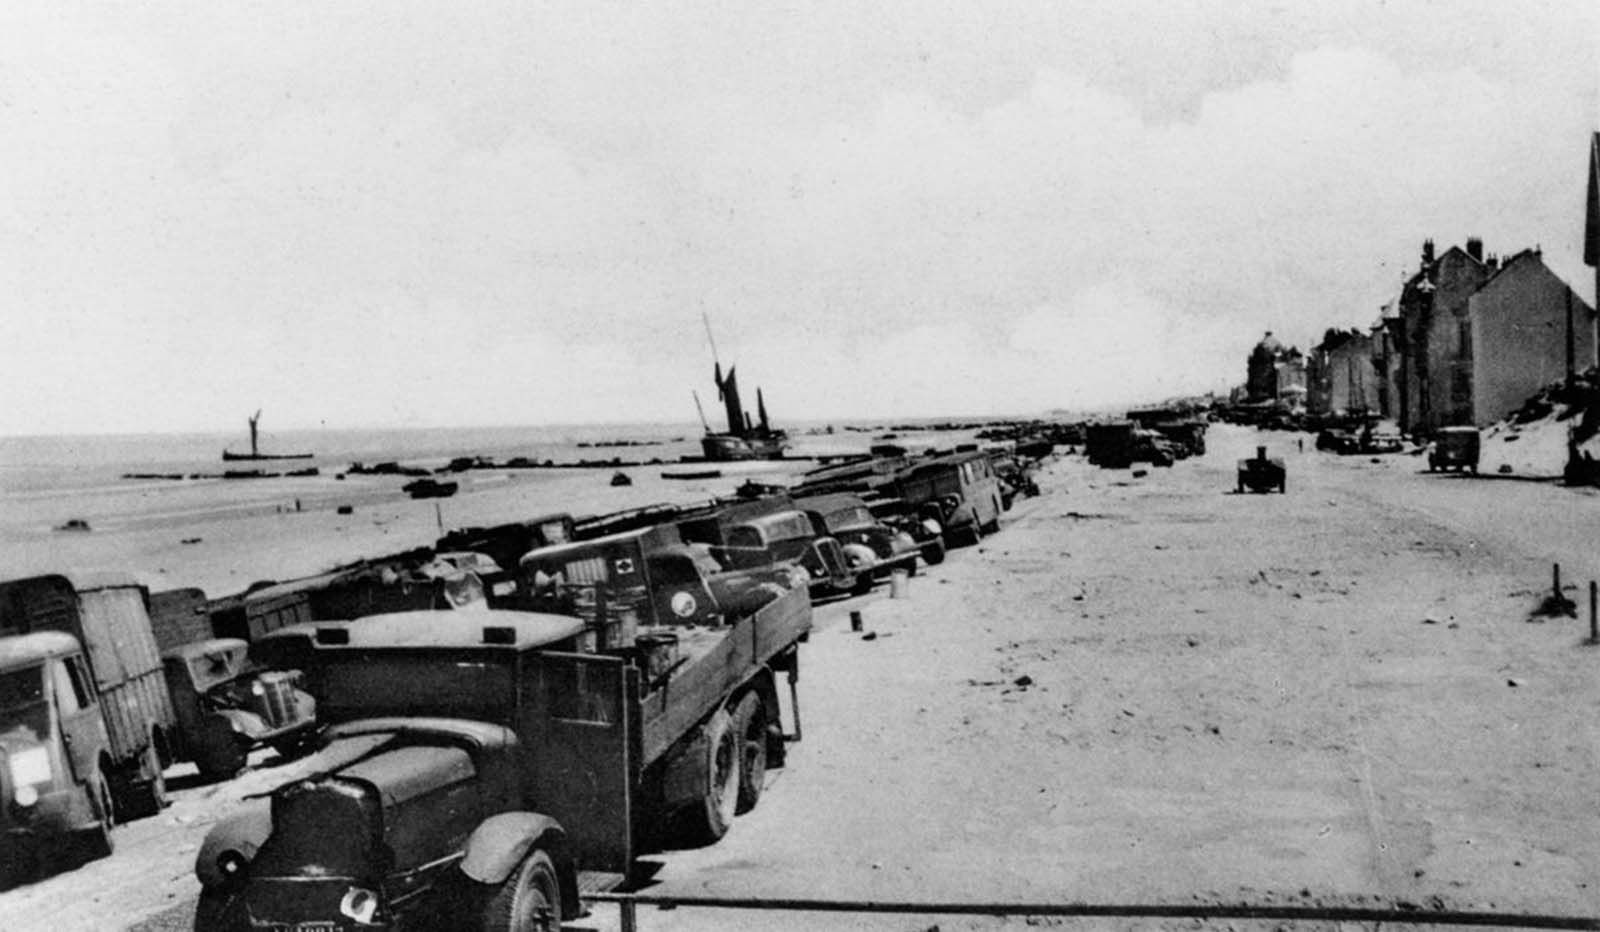 Abandoned trucks and equipment line the beach after the Allied evacuation.